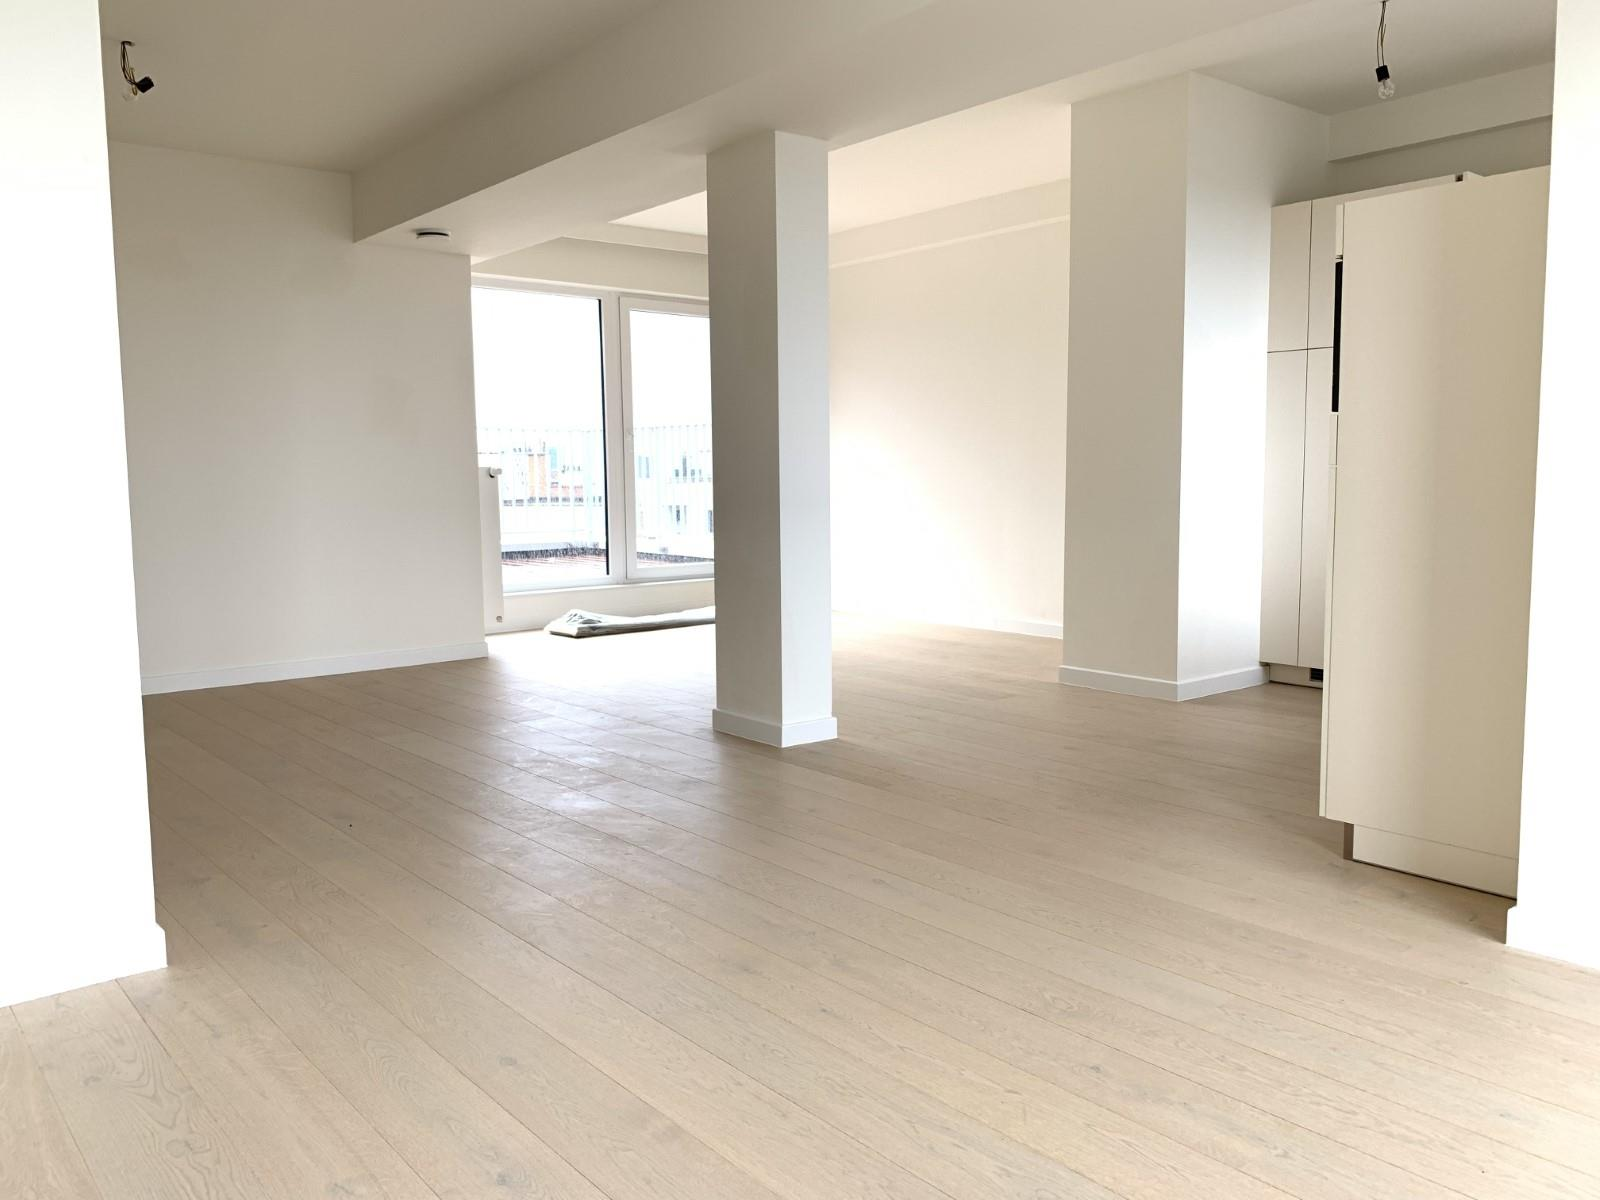 Appartement exceptionnel - Schaerbeek - #3875201-11